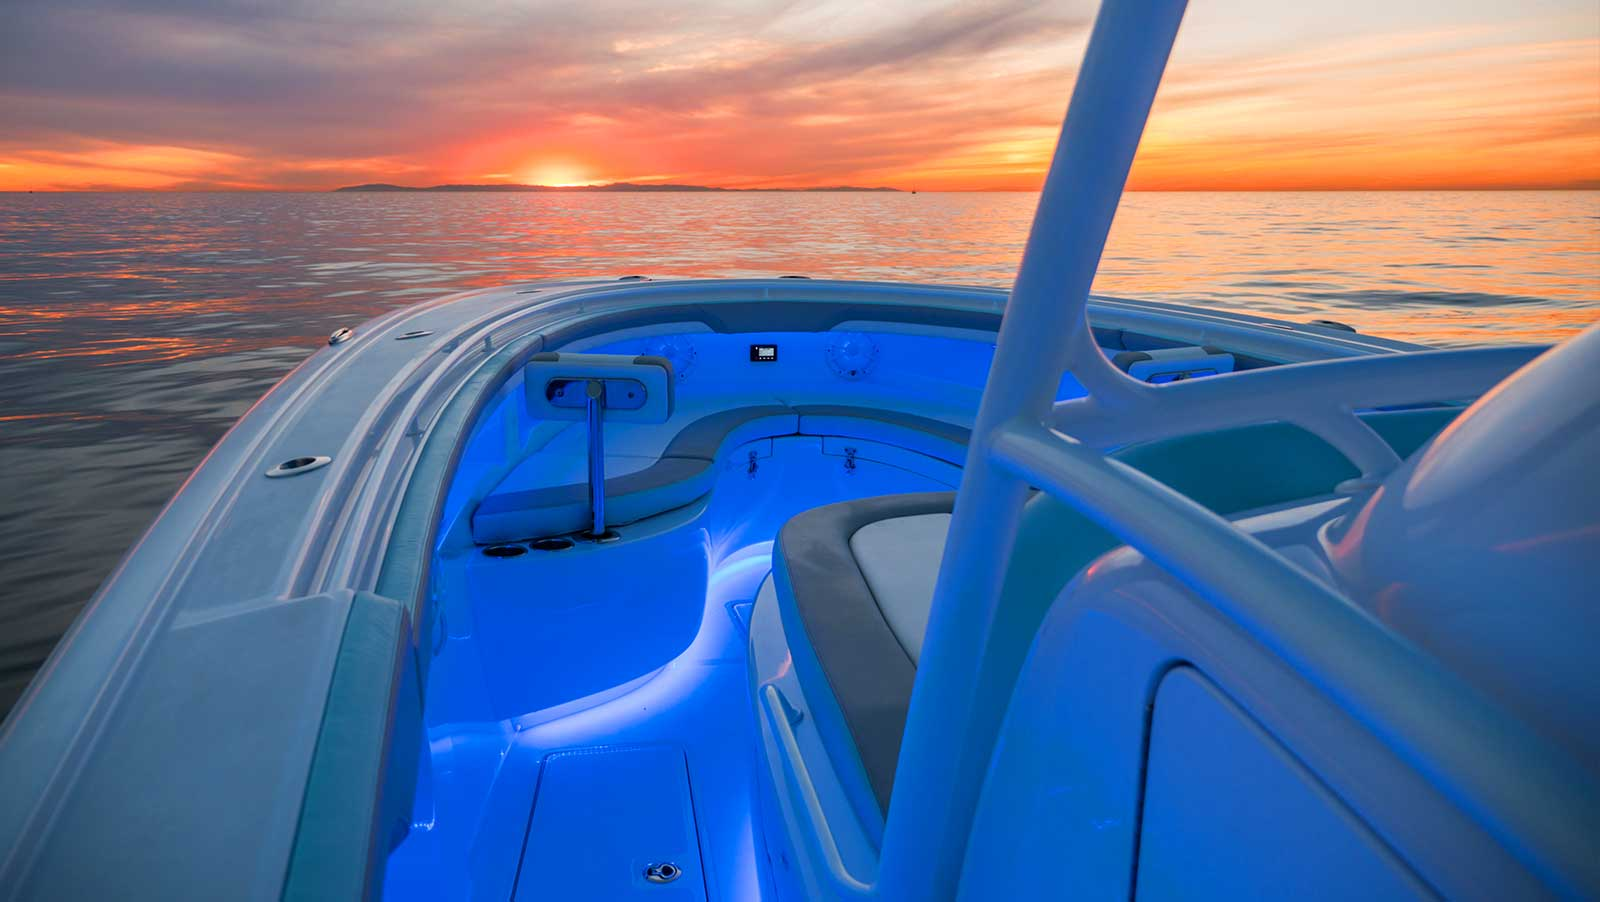 hull-custom-light-design-yachts.jpg